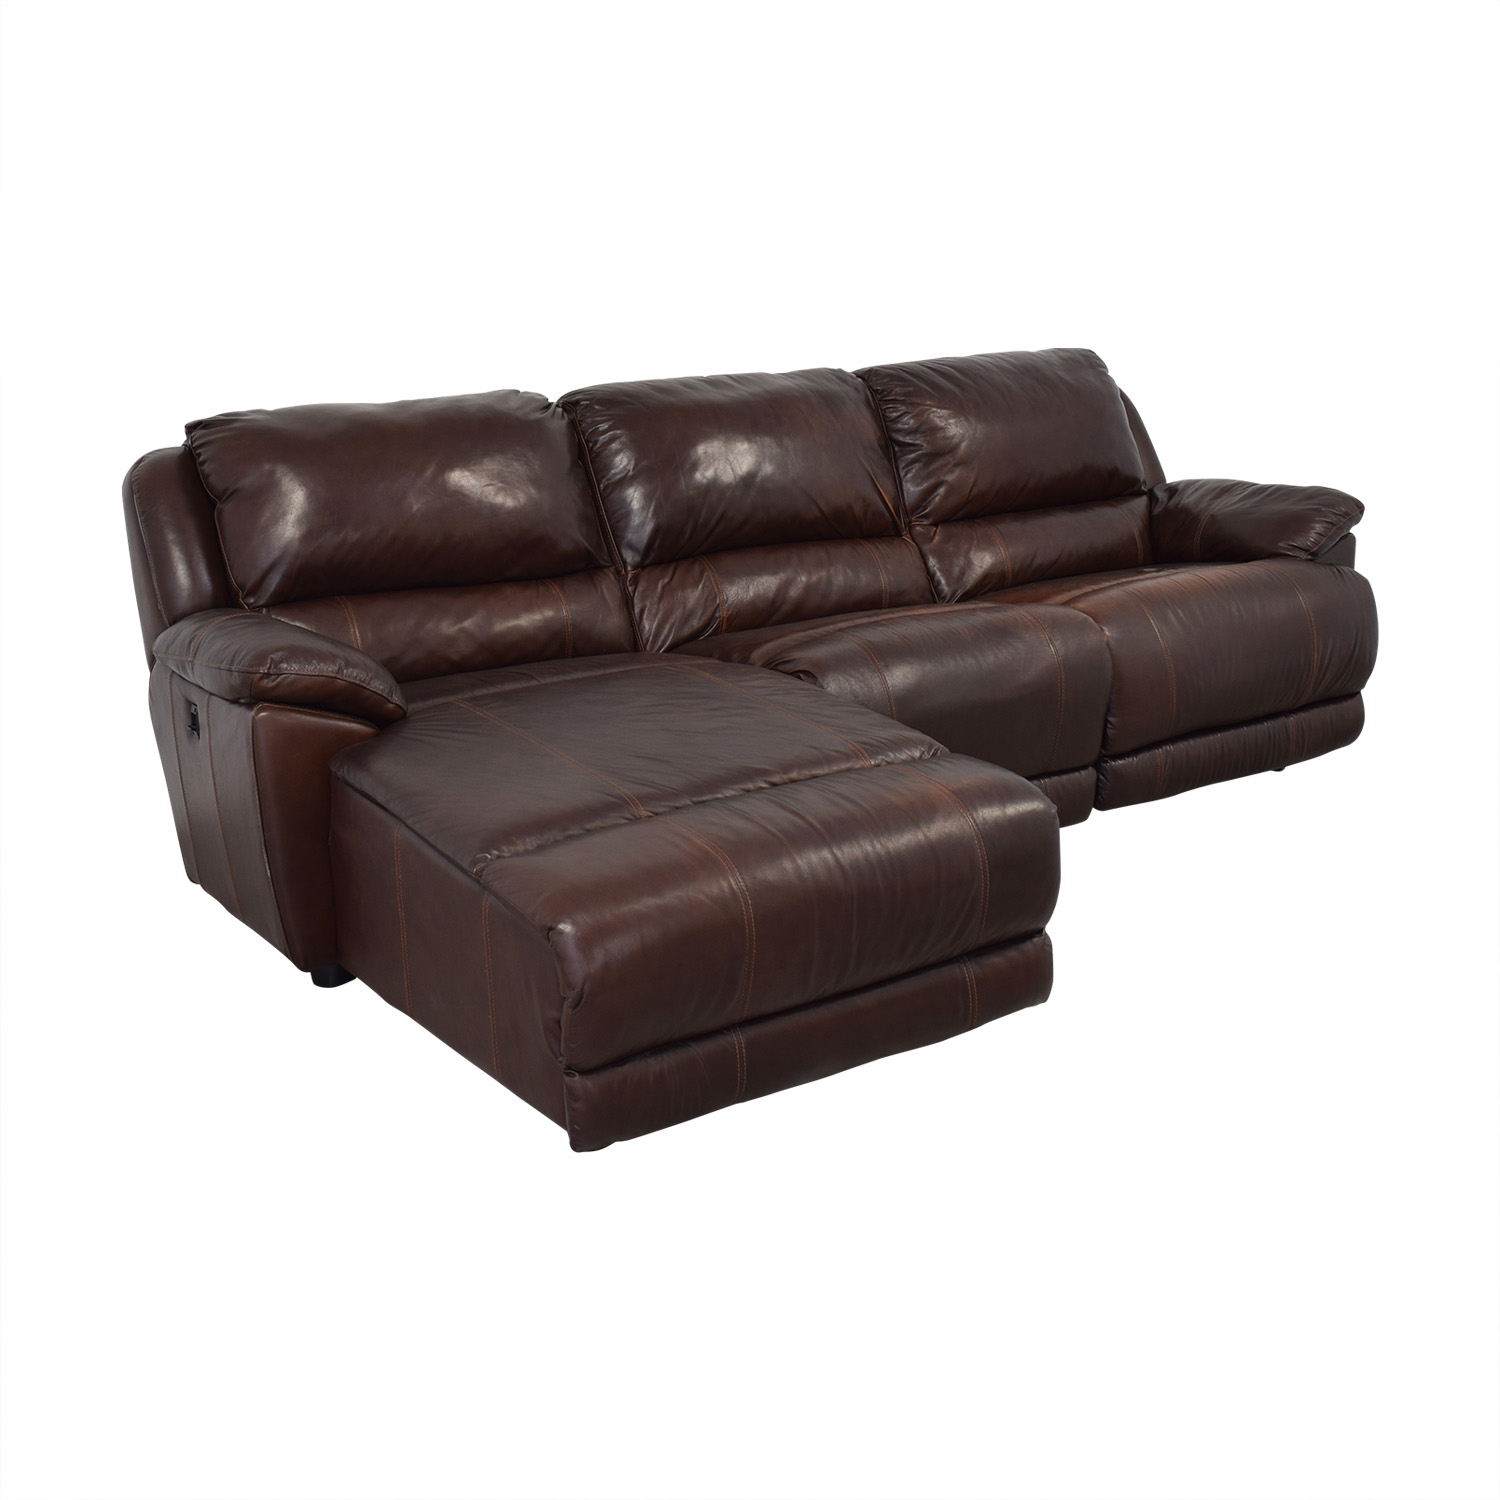 Macy's Macy's Leather Sectional dimensions